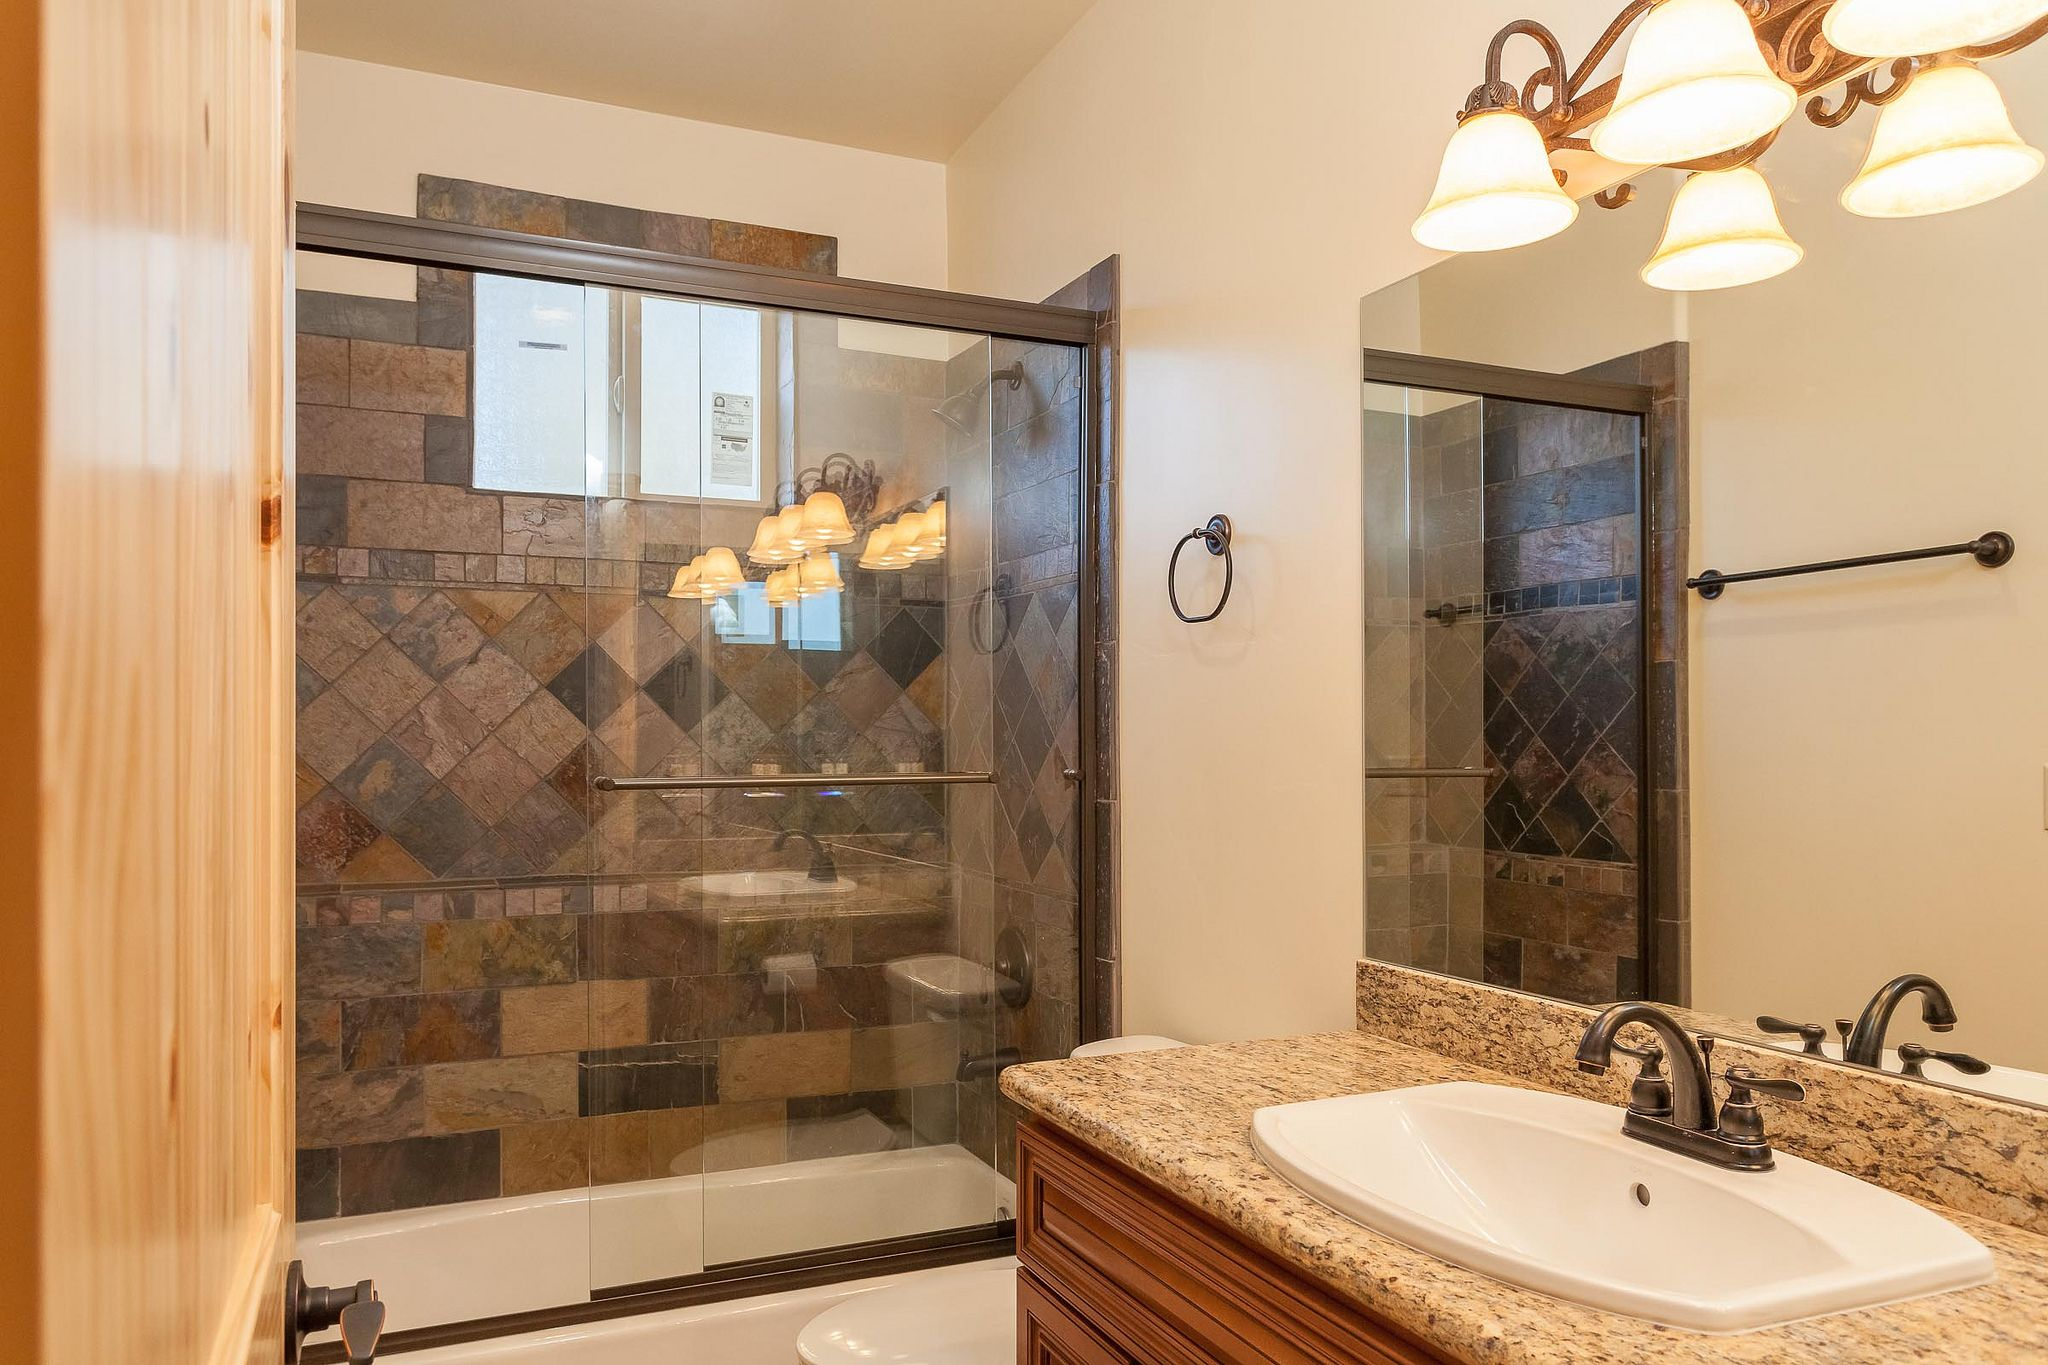 419 Starlight Circle, Big Bear CA 92315 by the Canaday Group. For a private tour, call Lee Ann Canaday 949-249-2424 #bathroom #guestbath #finehomes